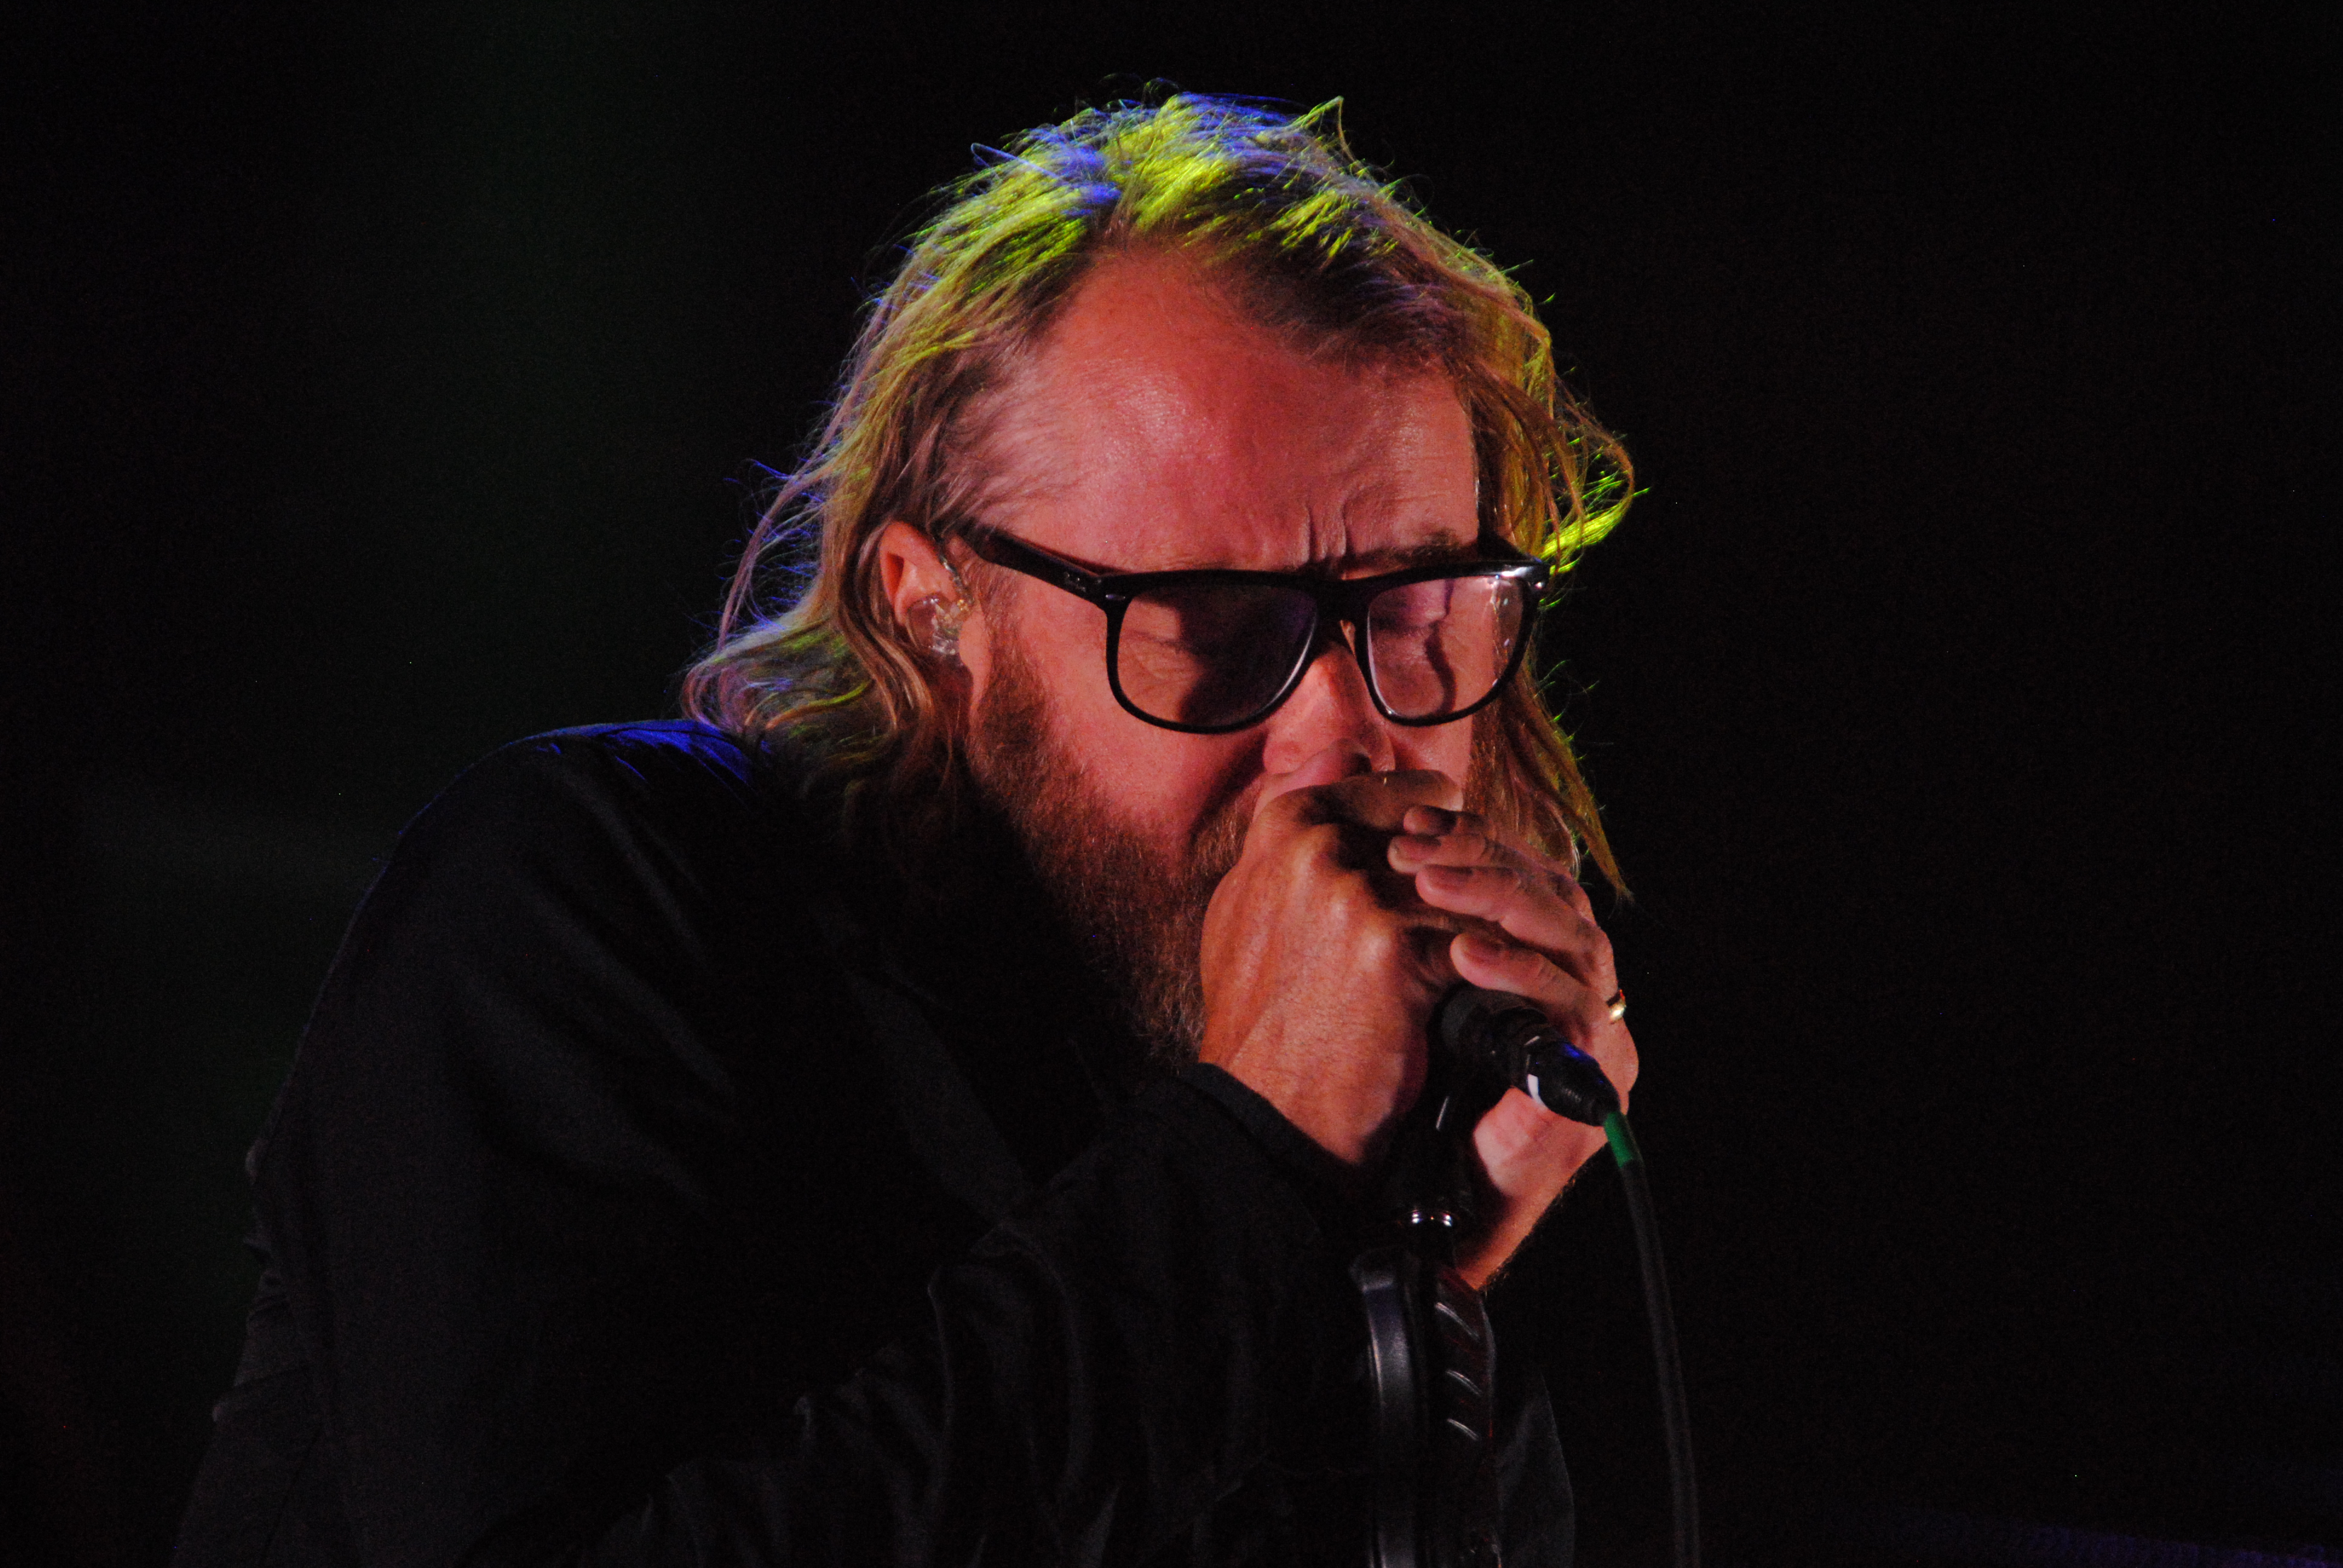 Interview: The National's Matt Berninger discusses new documentary, embracing the band's chemistry